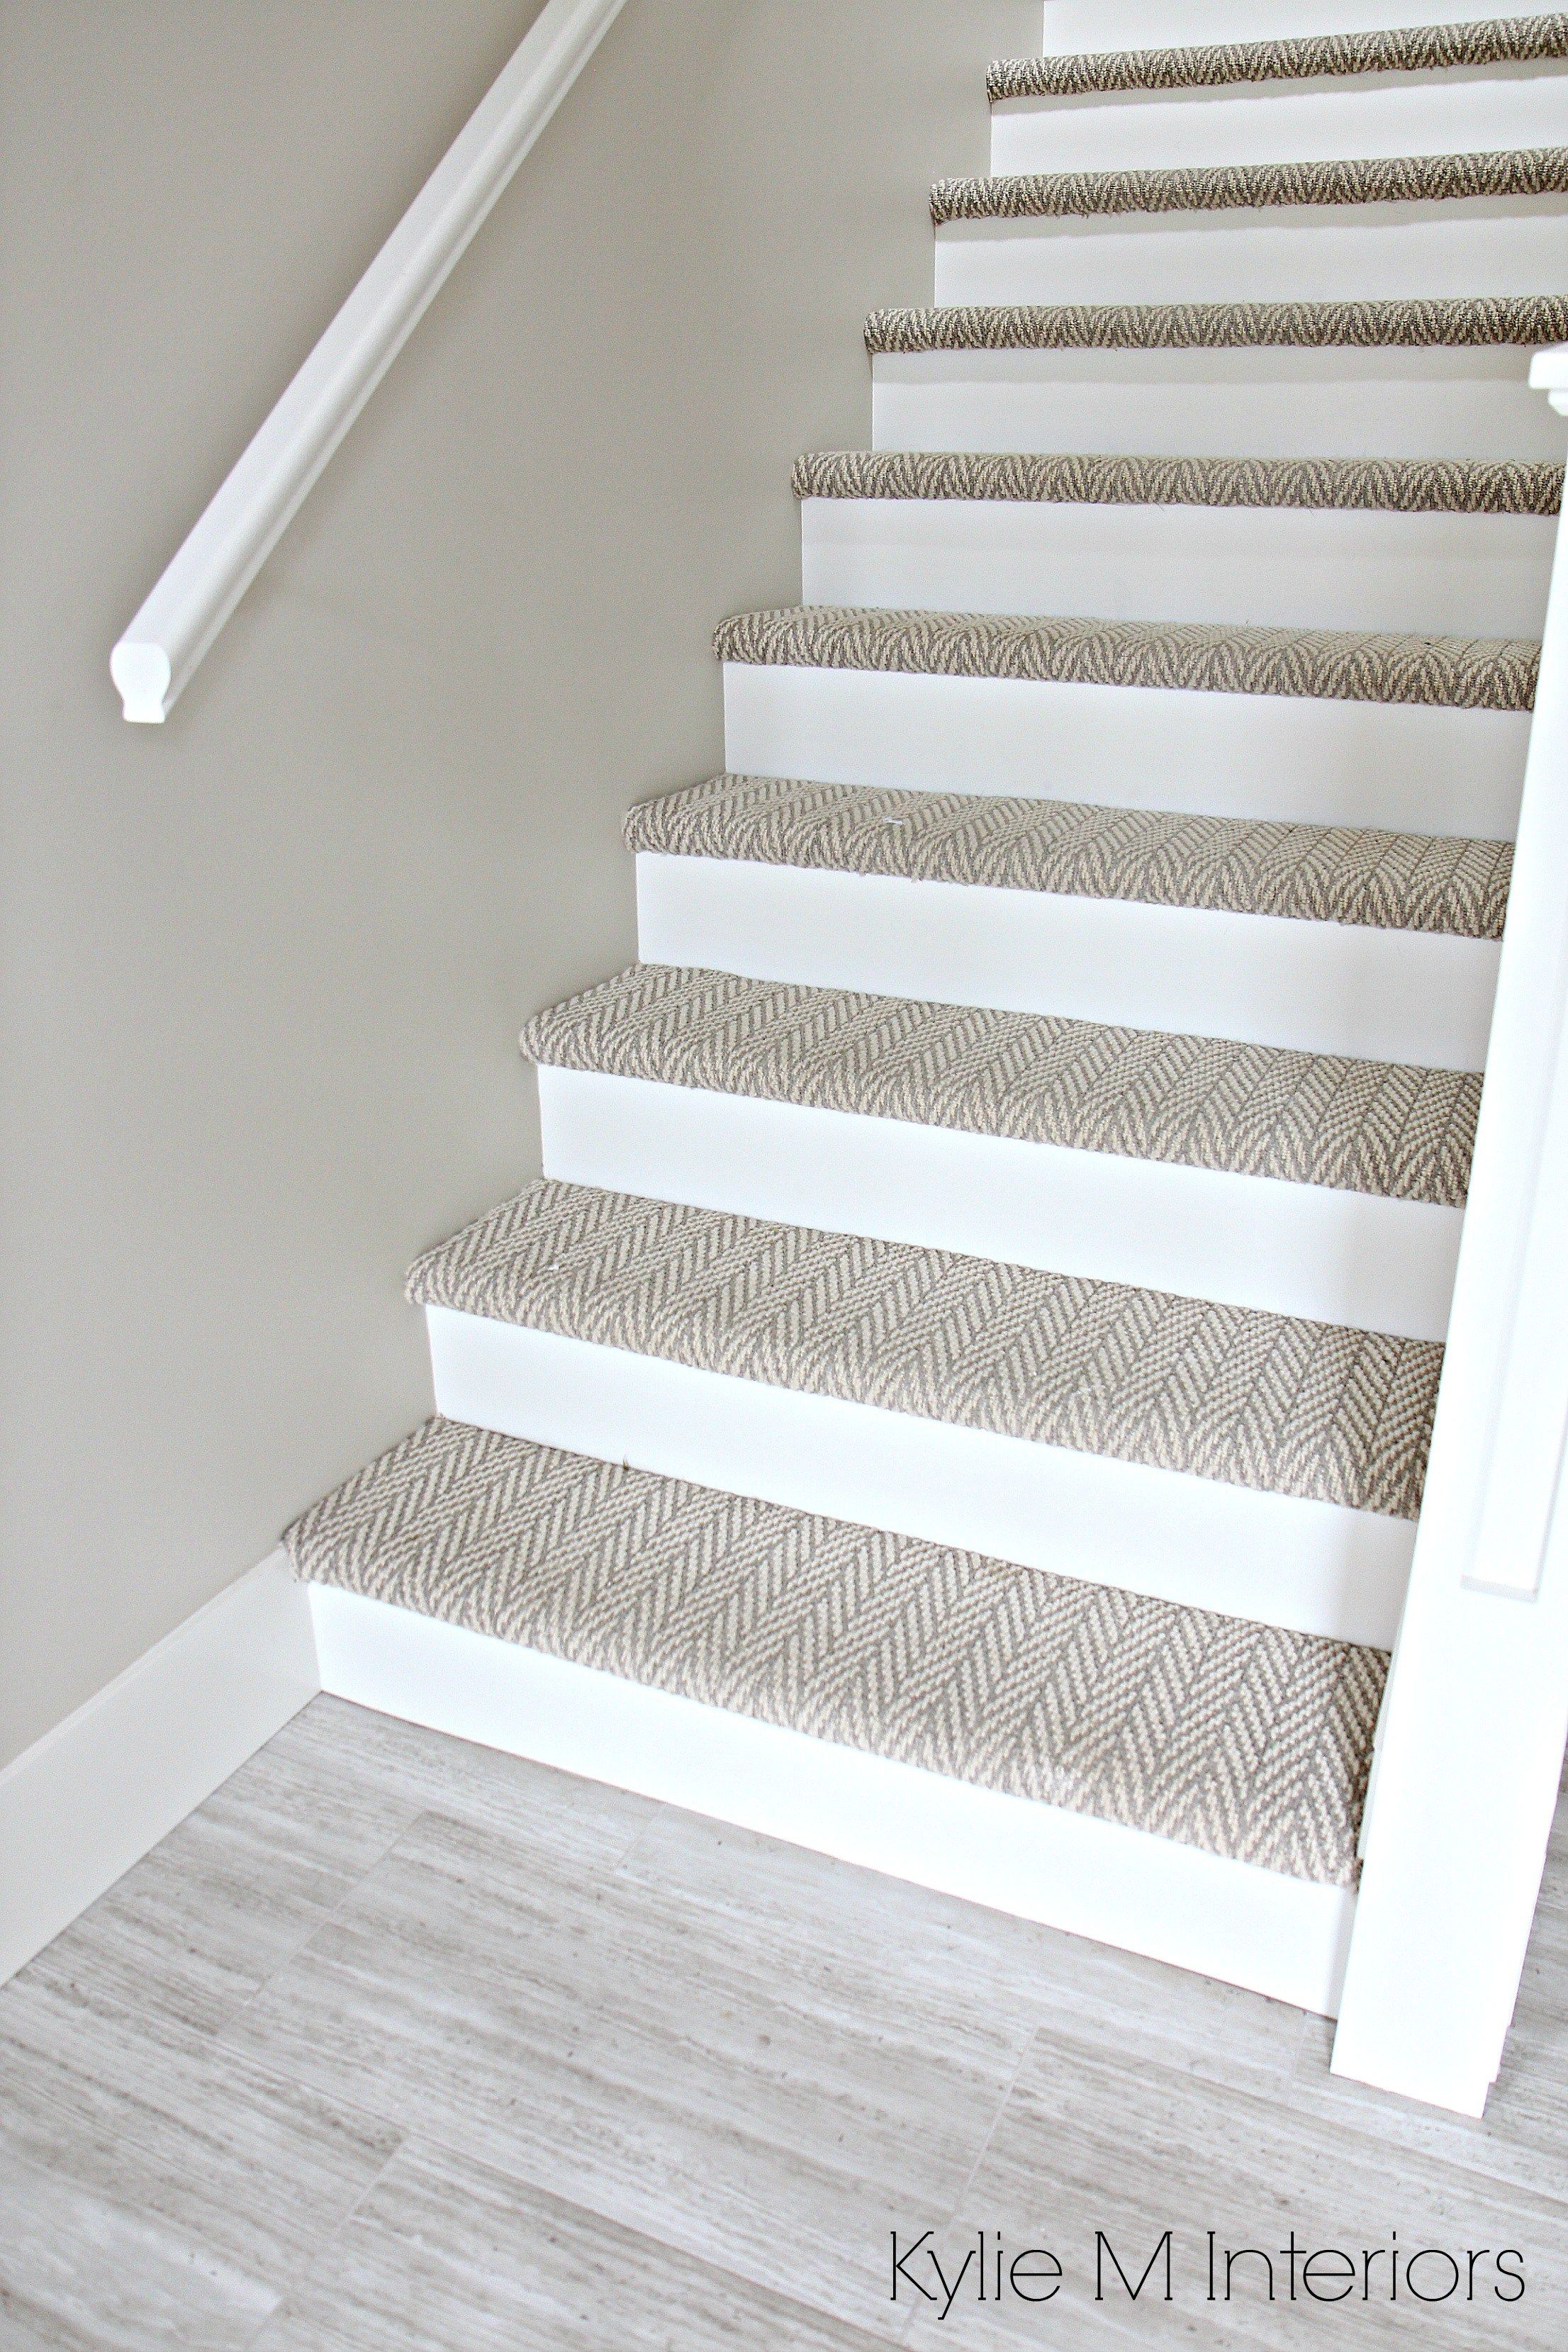 Stairs With Carpet Herringbone Treads And Painted White Risers | Grey Carpet Treads For Stairs | Wool Carpet | Indoor Outdoor | Skid Resistant | Custom Stair | Rugs